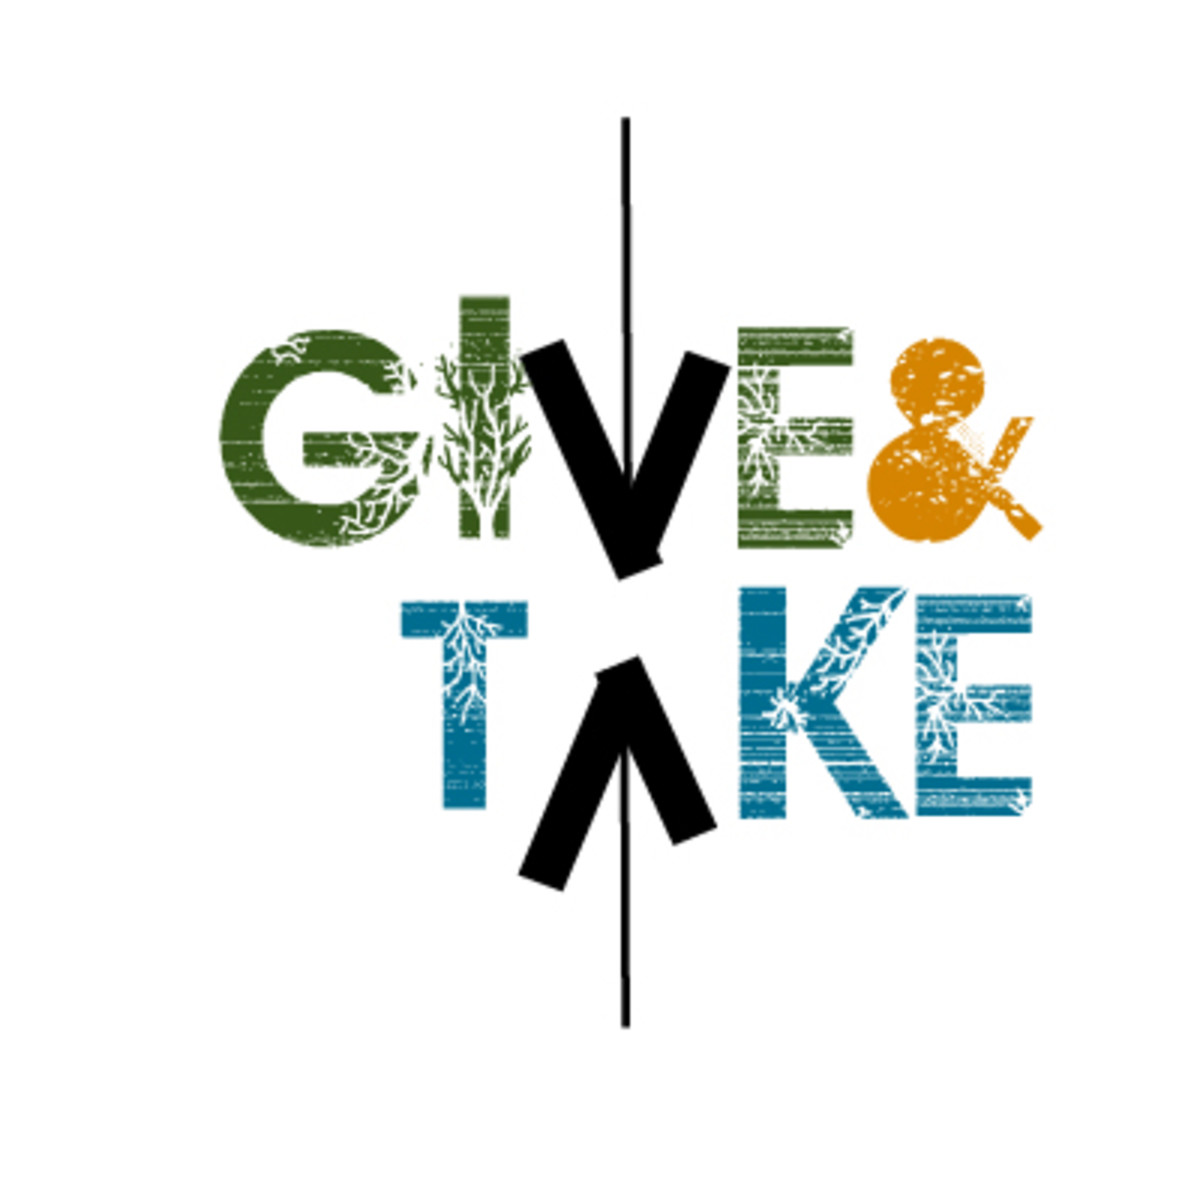 How to Be More Effective in the Workplace by Mastering the Art of the Give and Take